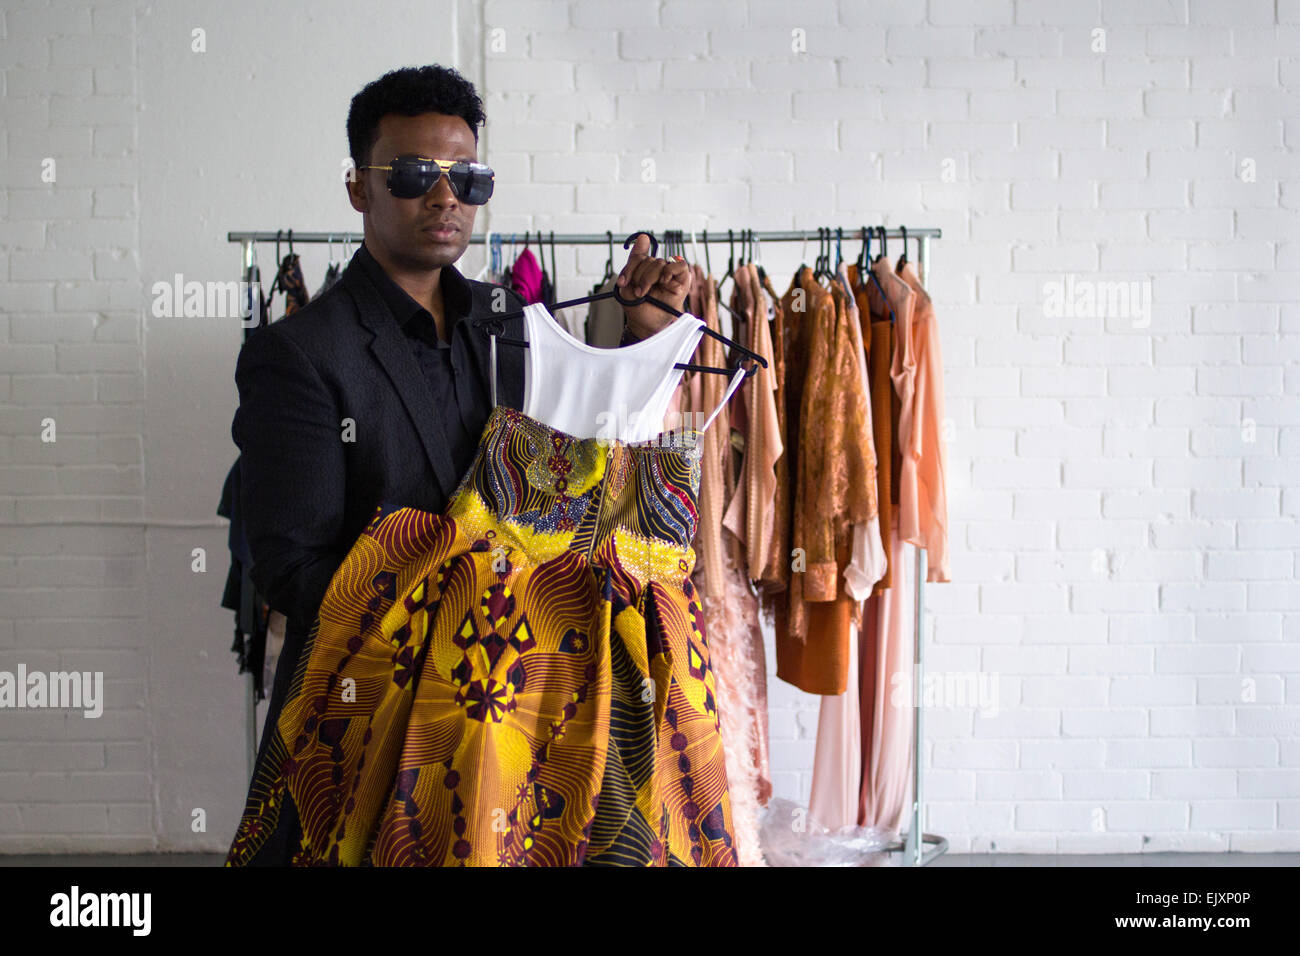 South African Fashion Designer David Tlale Poses With One Of His Stock Photo Royalty Free Image